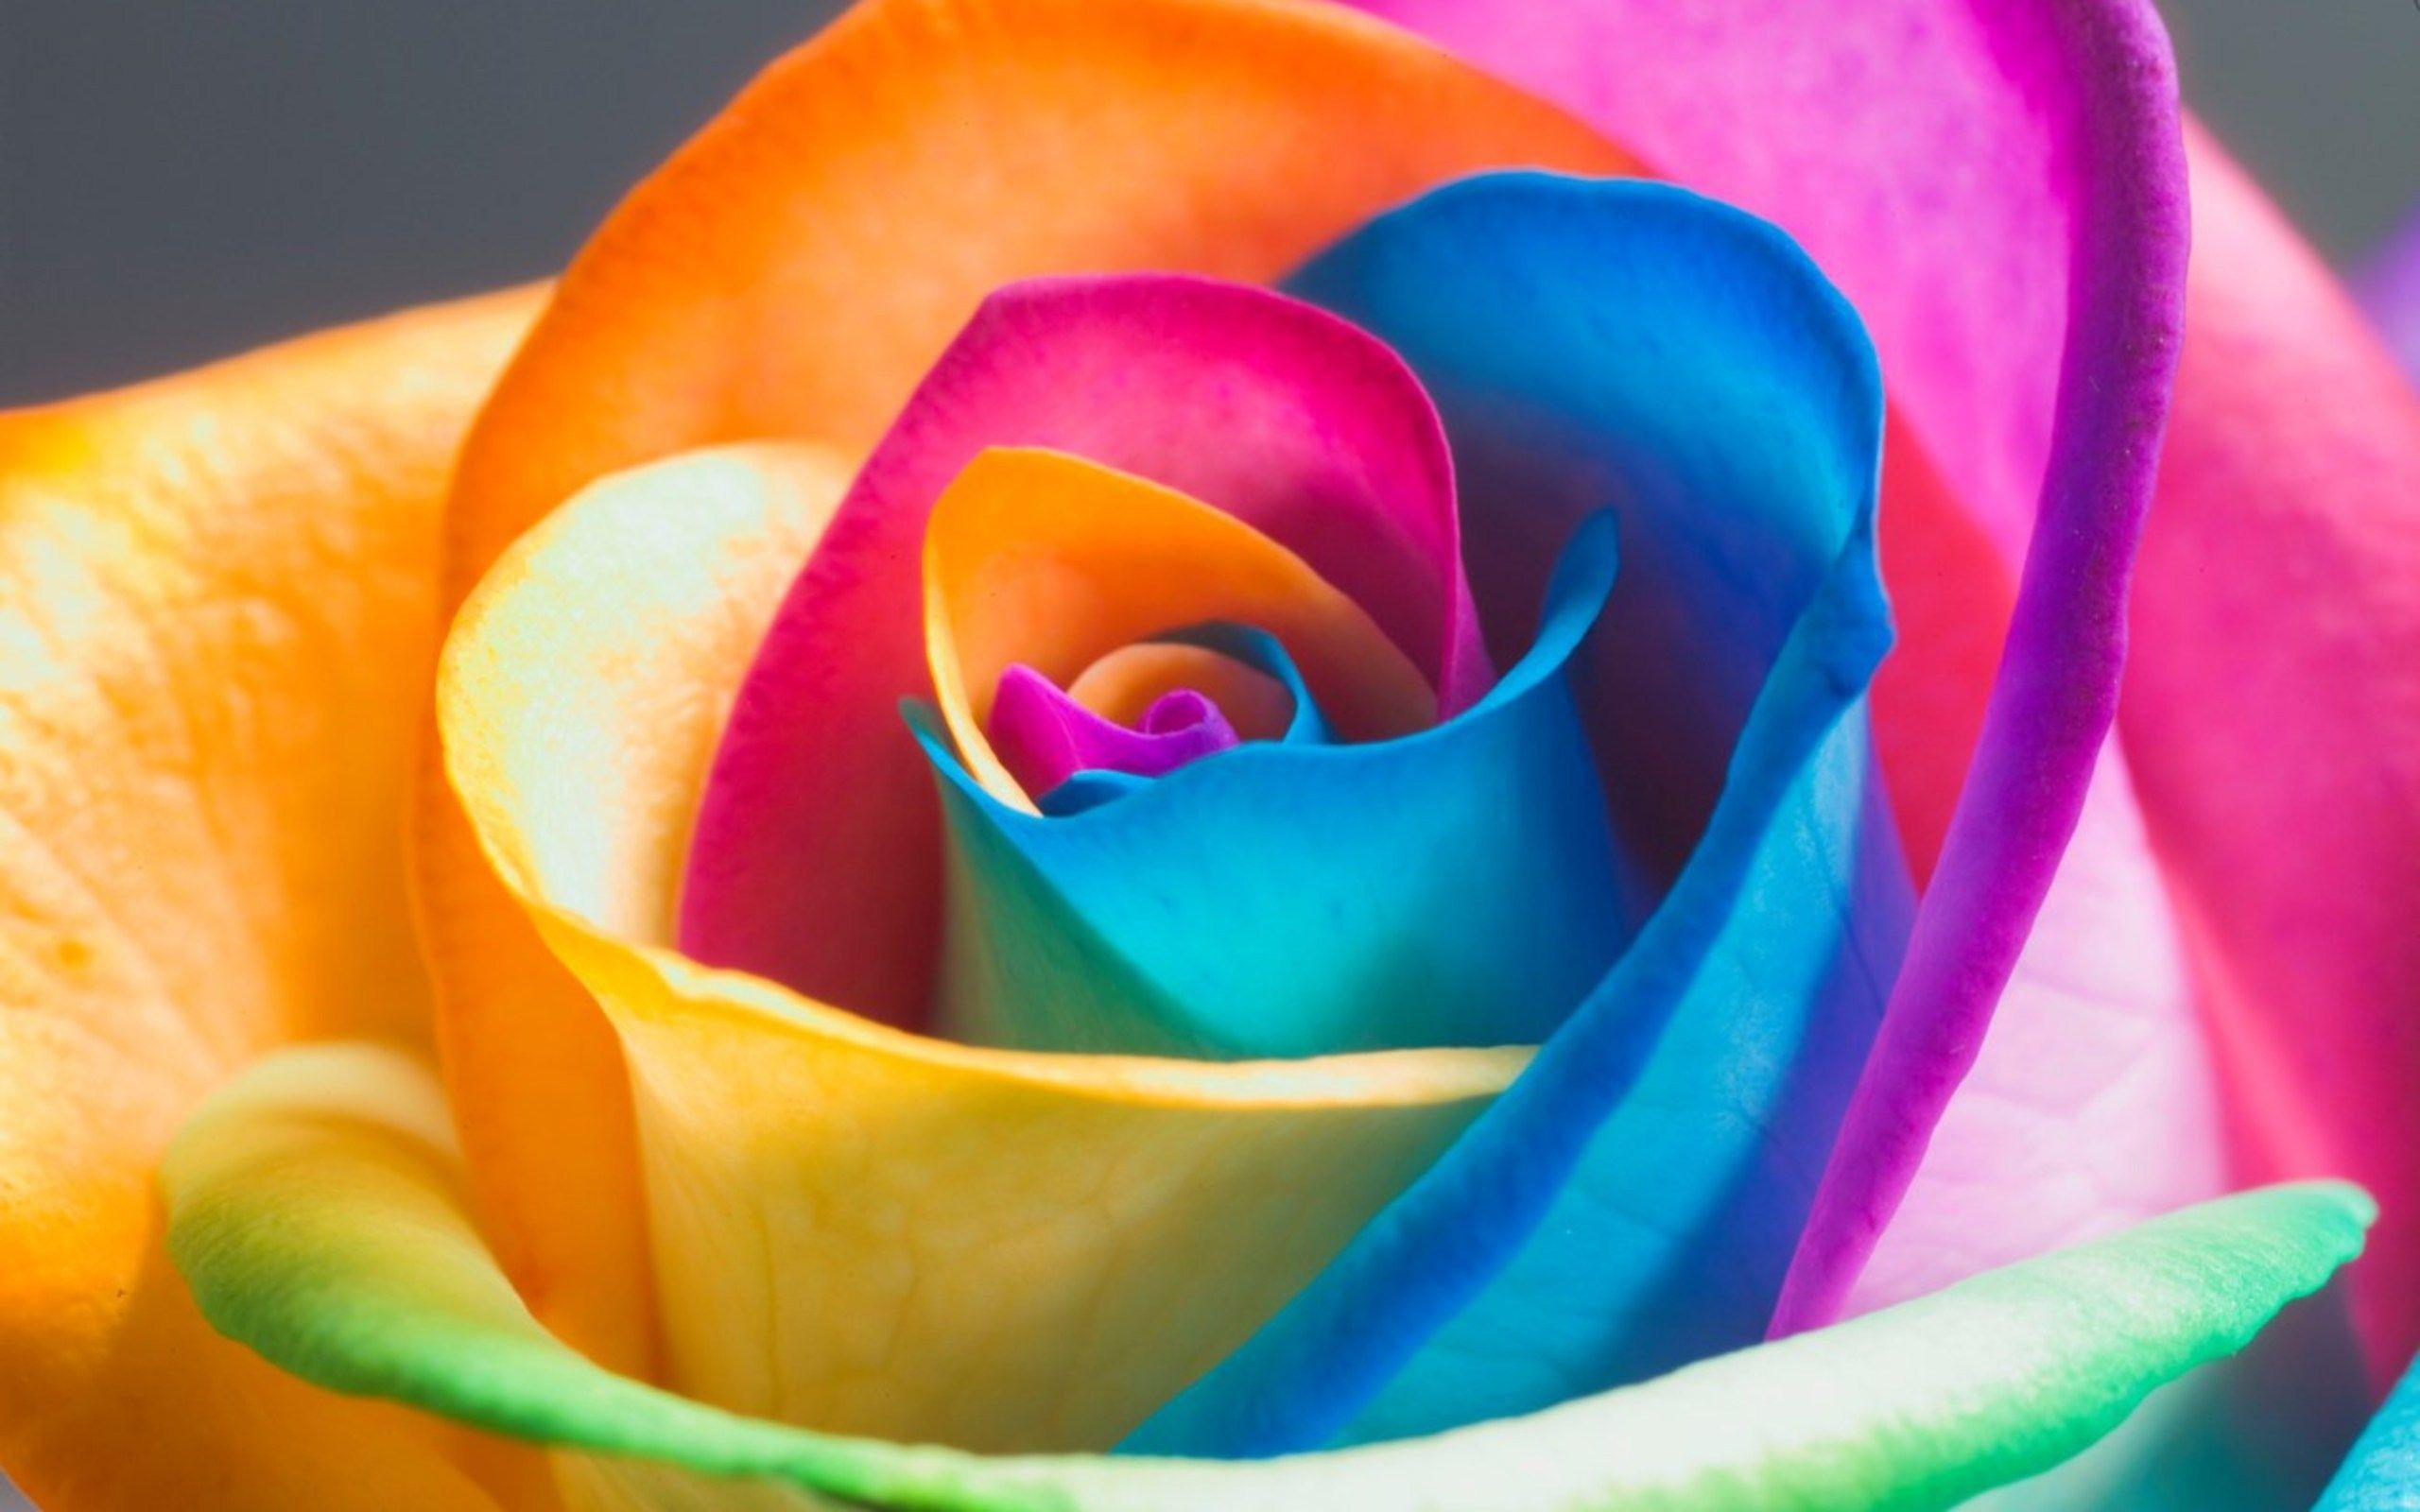 Colorful Flower Wallpapers 2560x1600